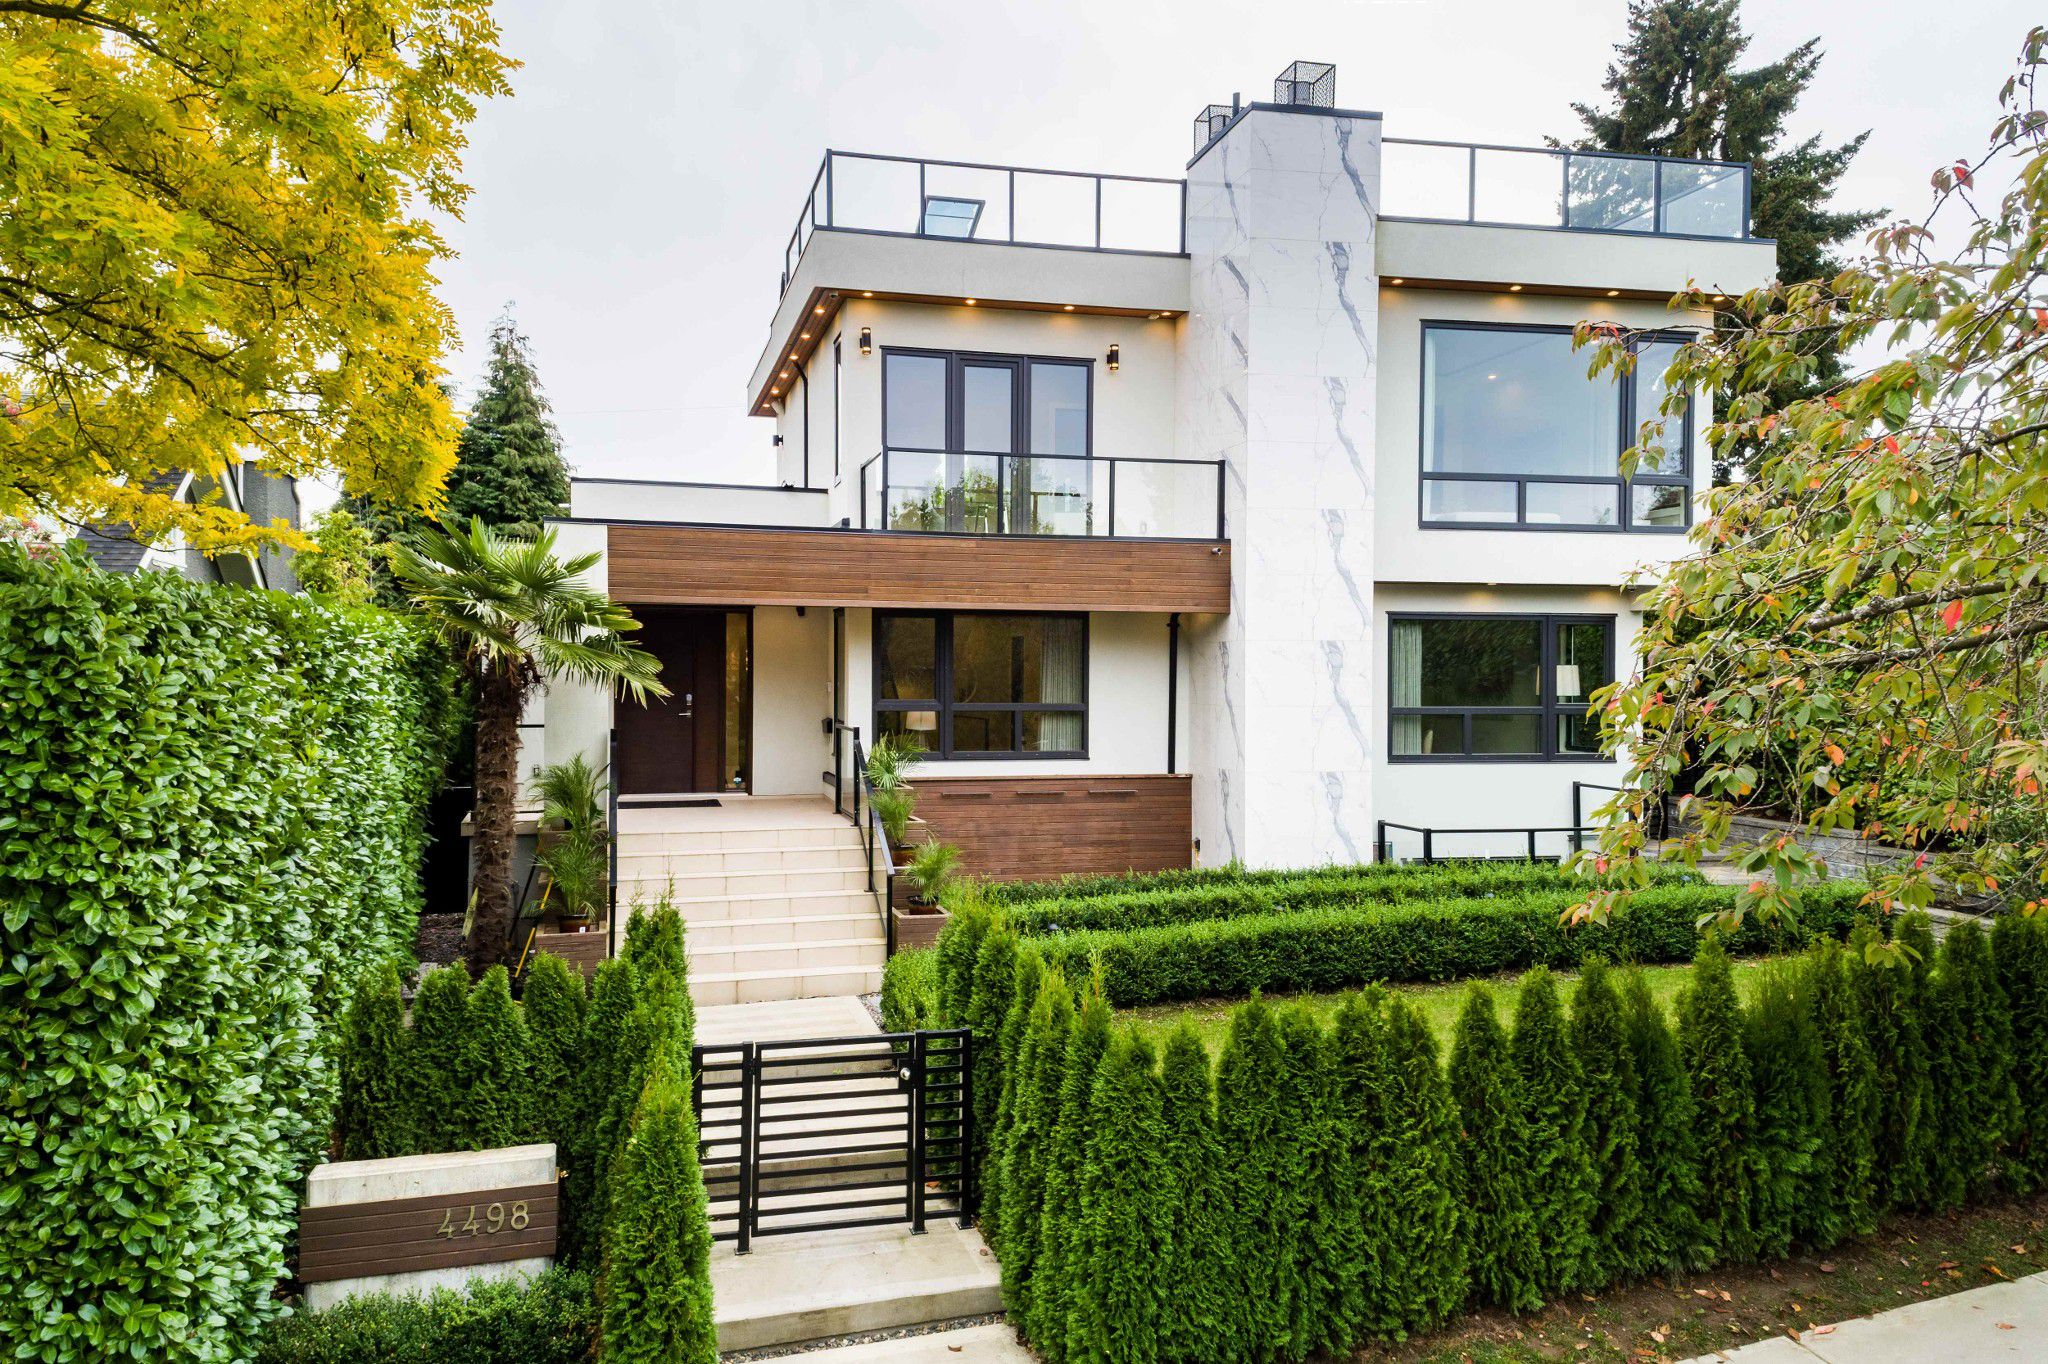 Main Photo: 4498 W 7TH Avenue in Vancouver: Point Grey House for sale (Vancouver West)  : MLS®# R2311991